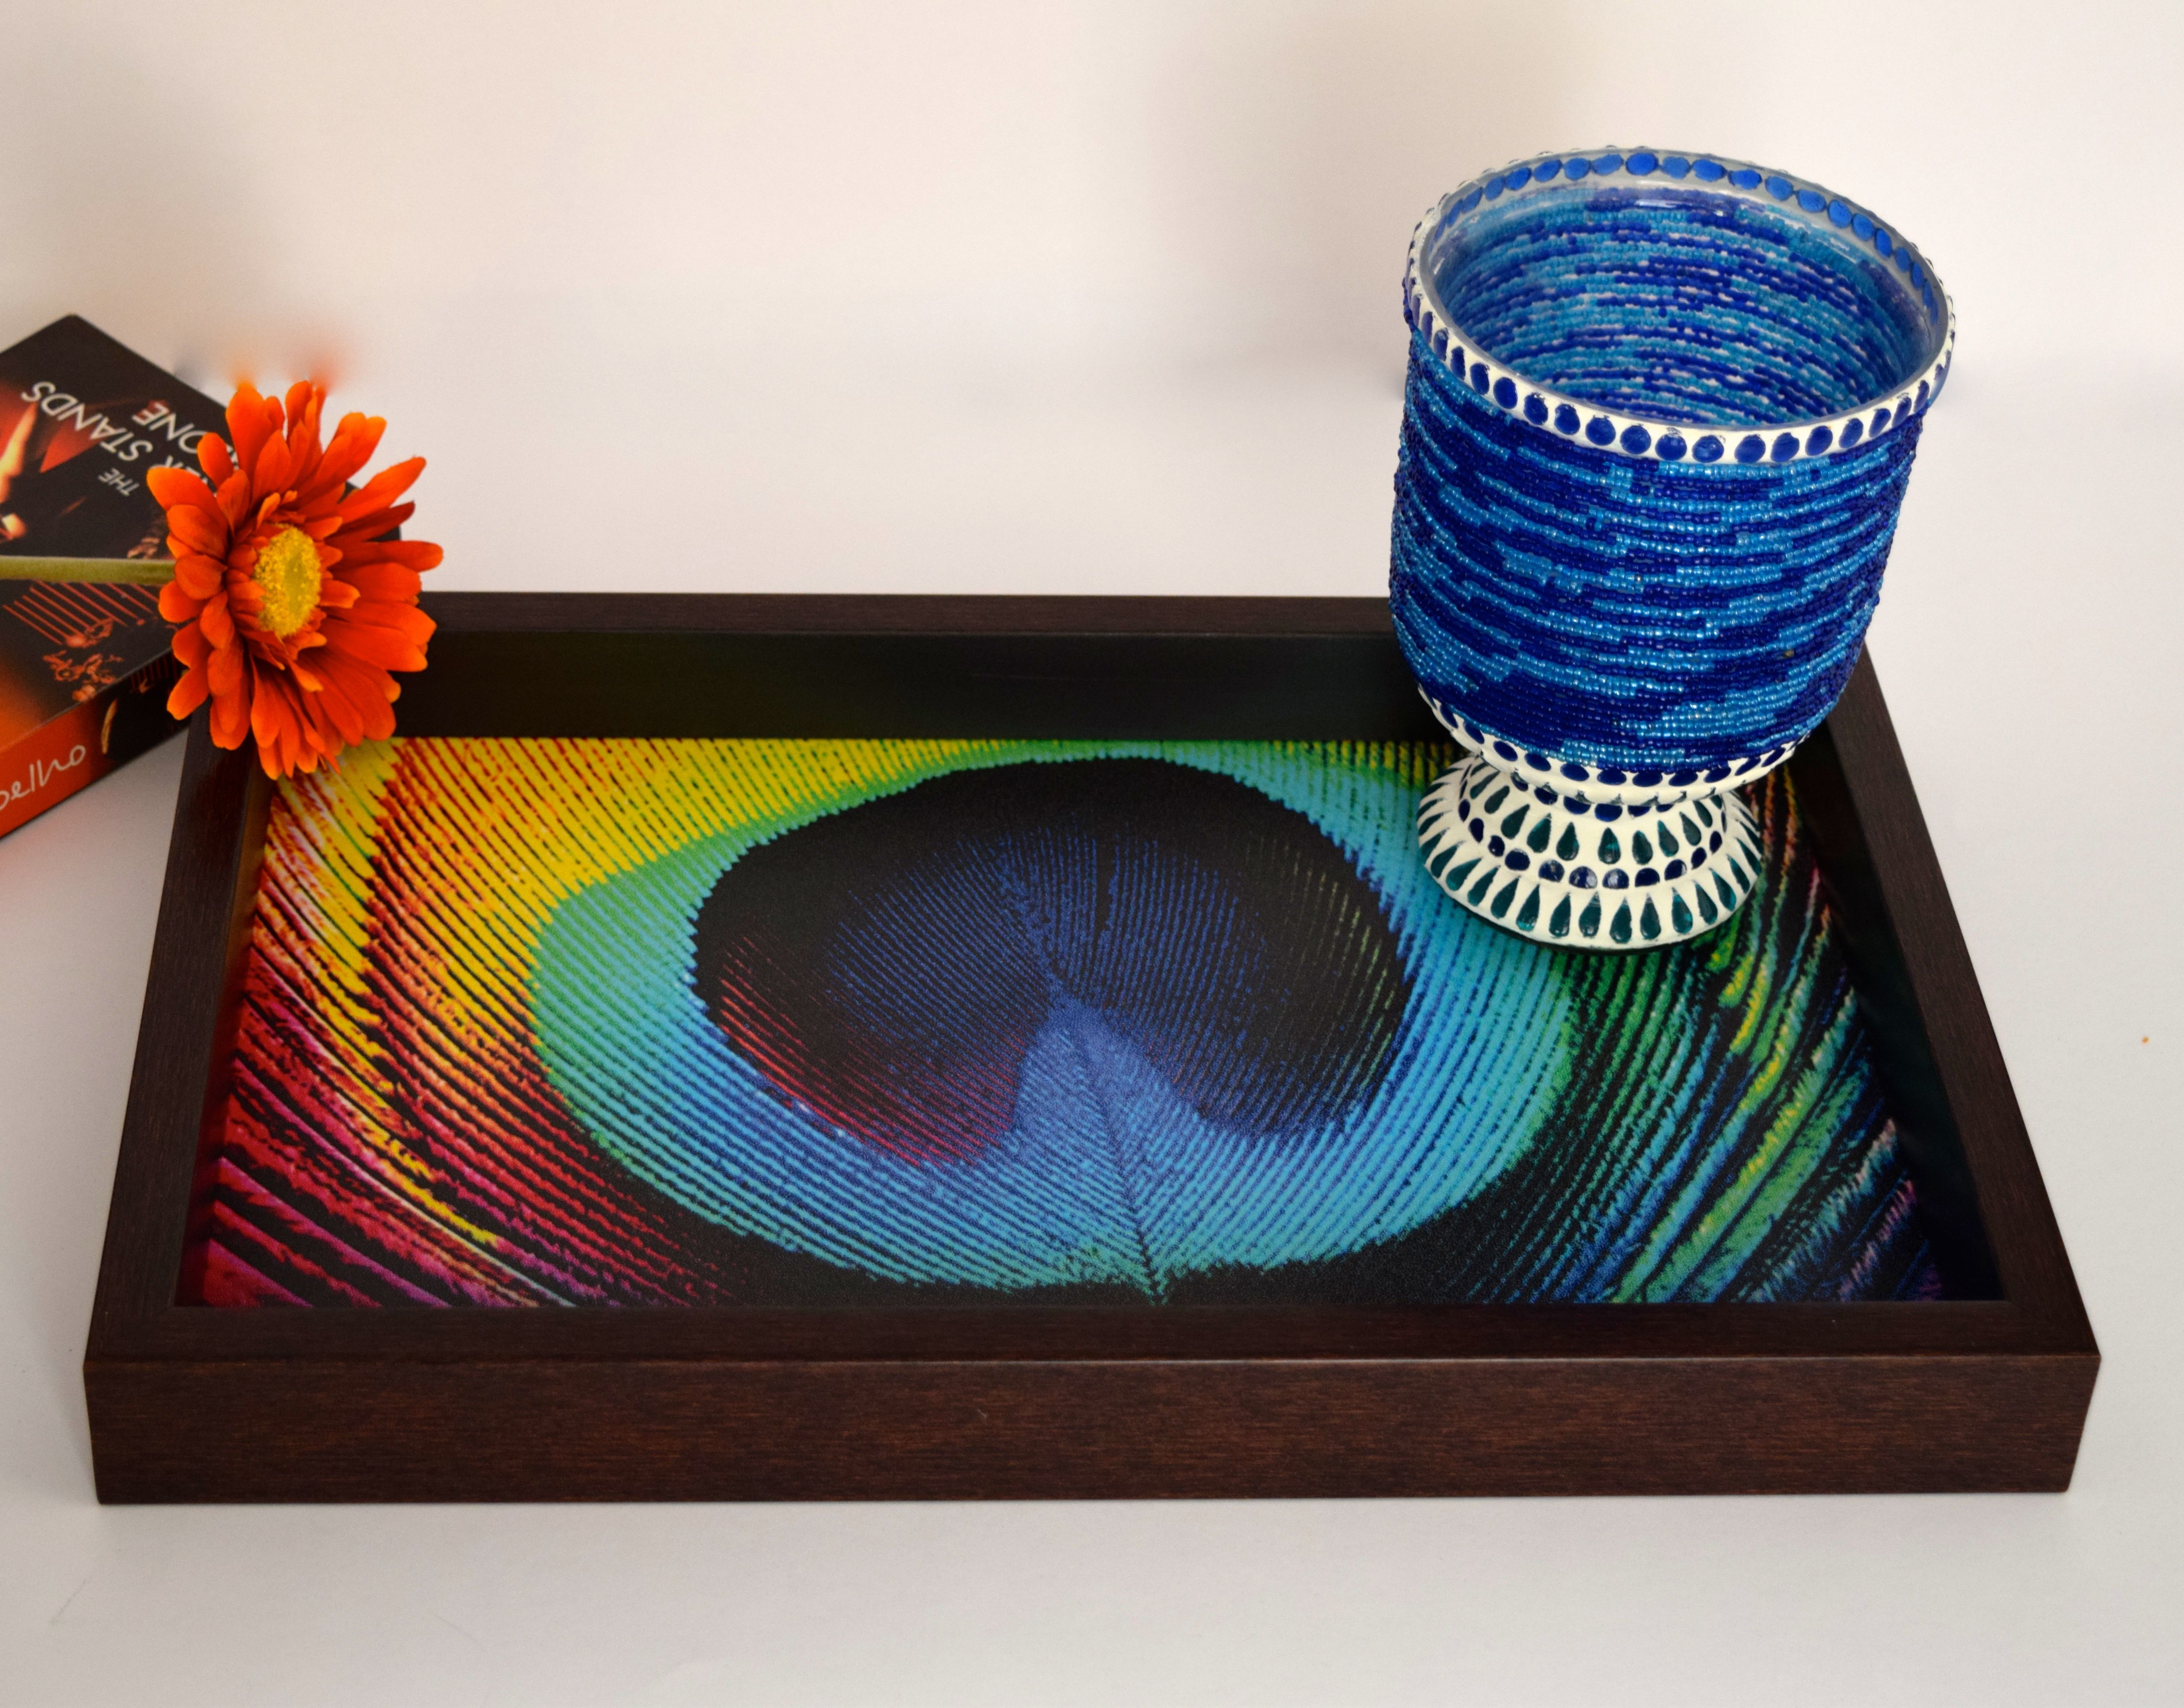 Multi colored peacock feather serving tray.